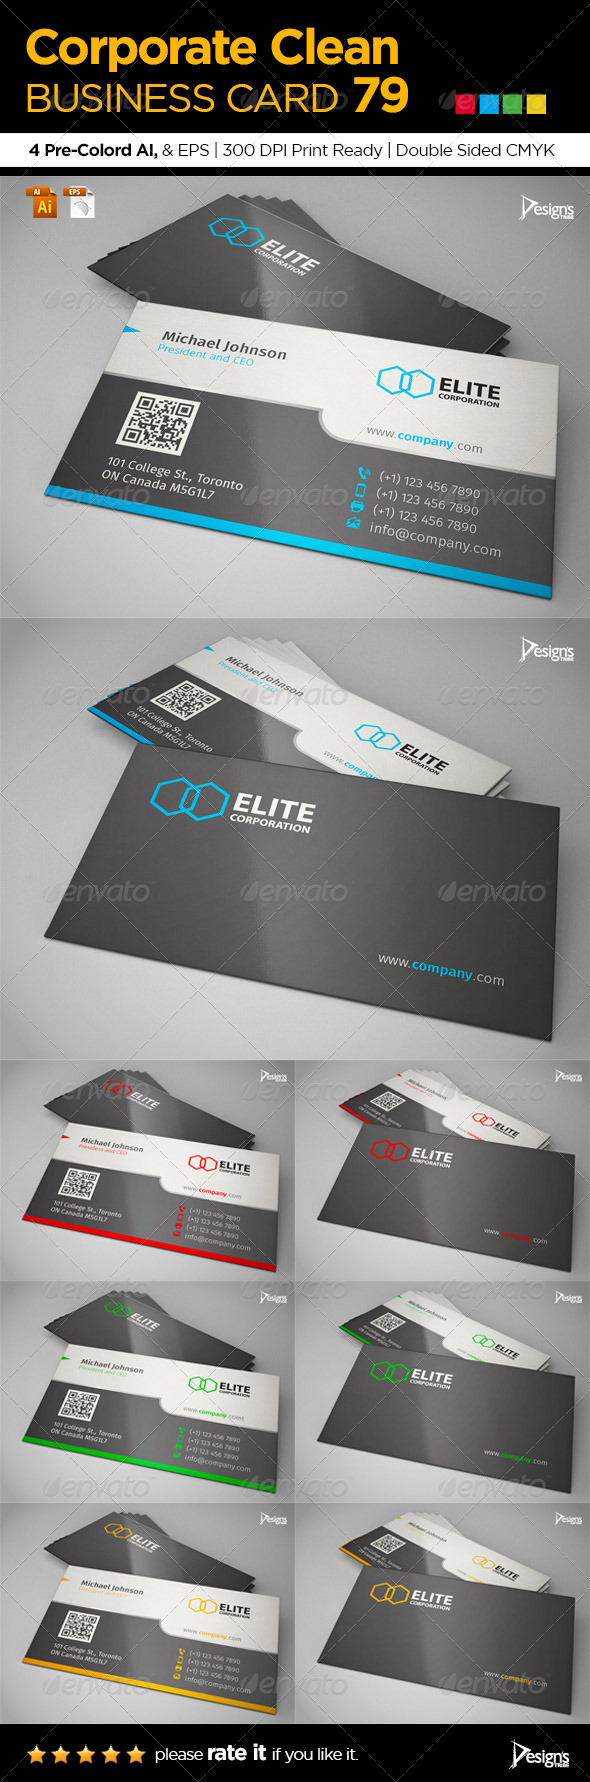 Corporate Clean Business Card 79 - Business Cards Print Templates